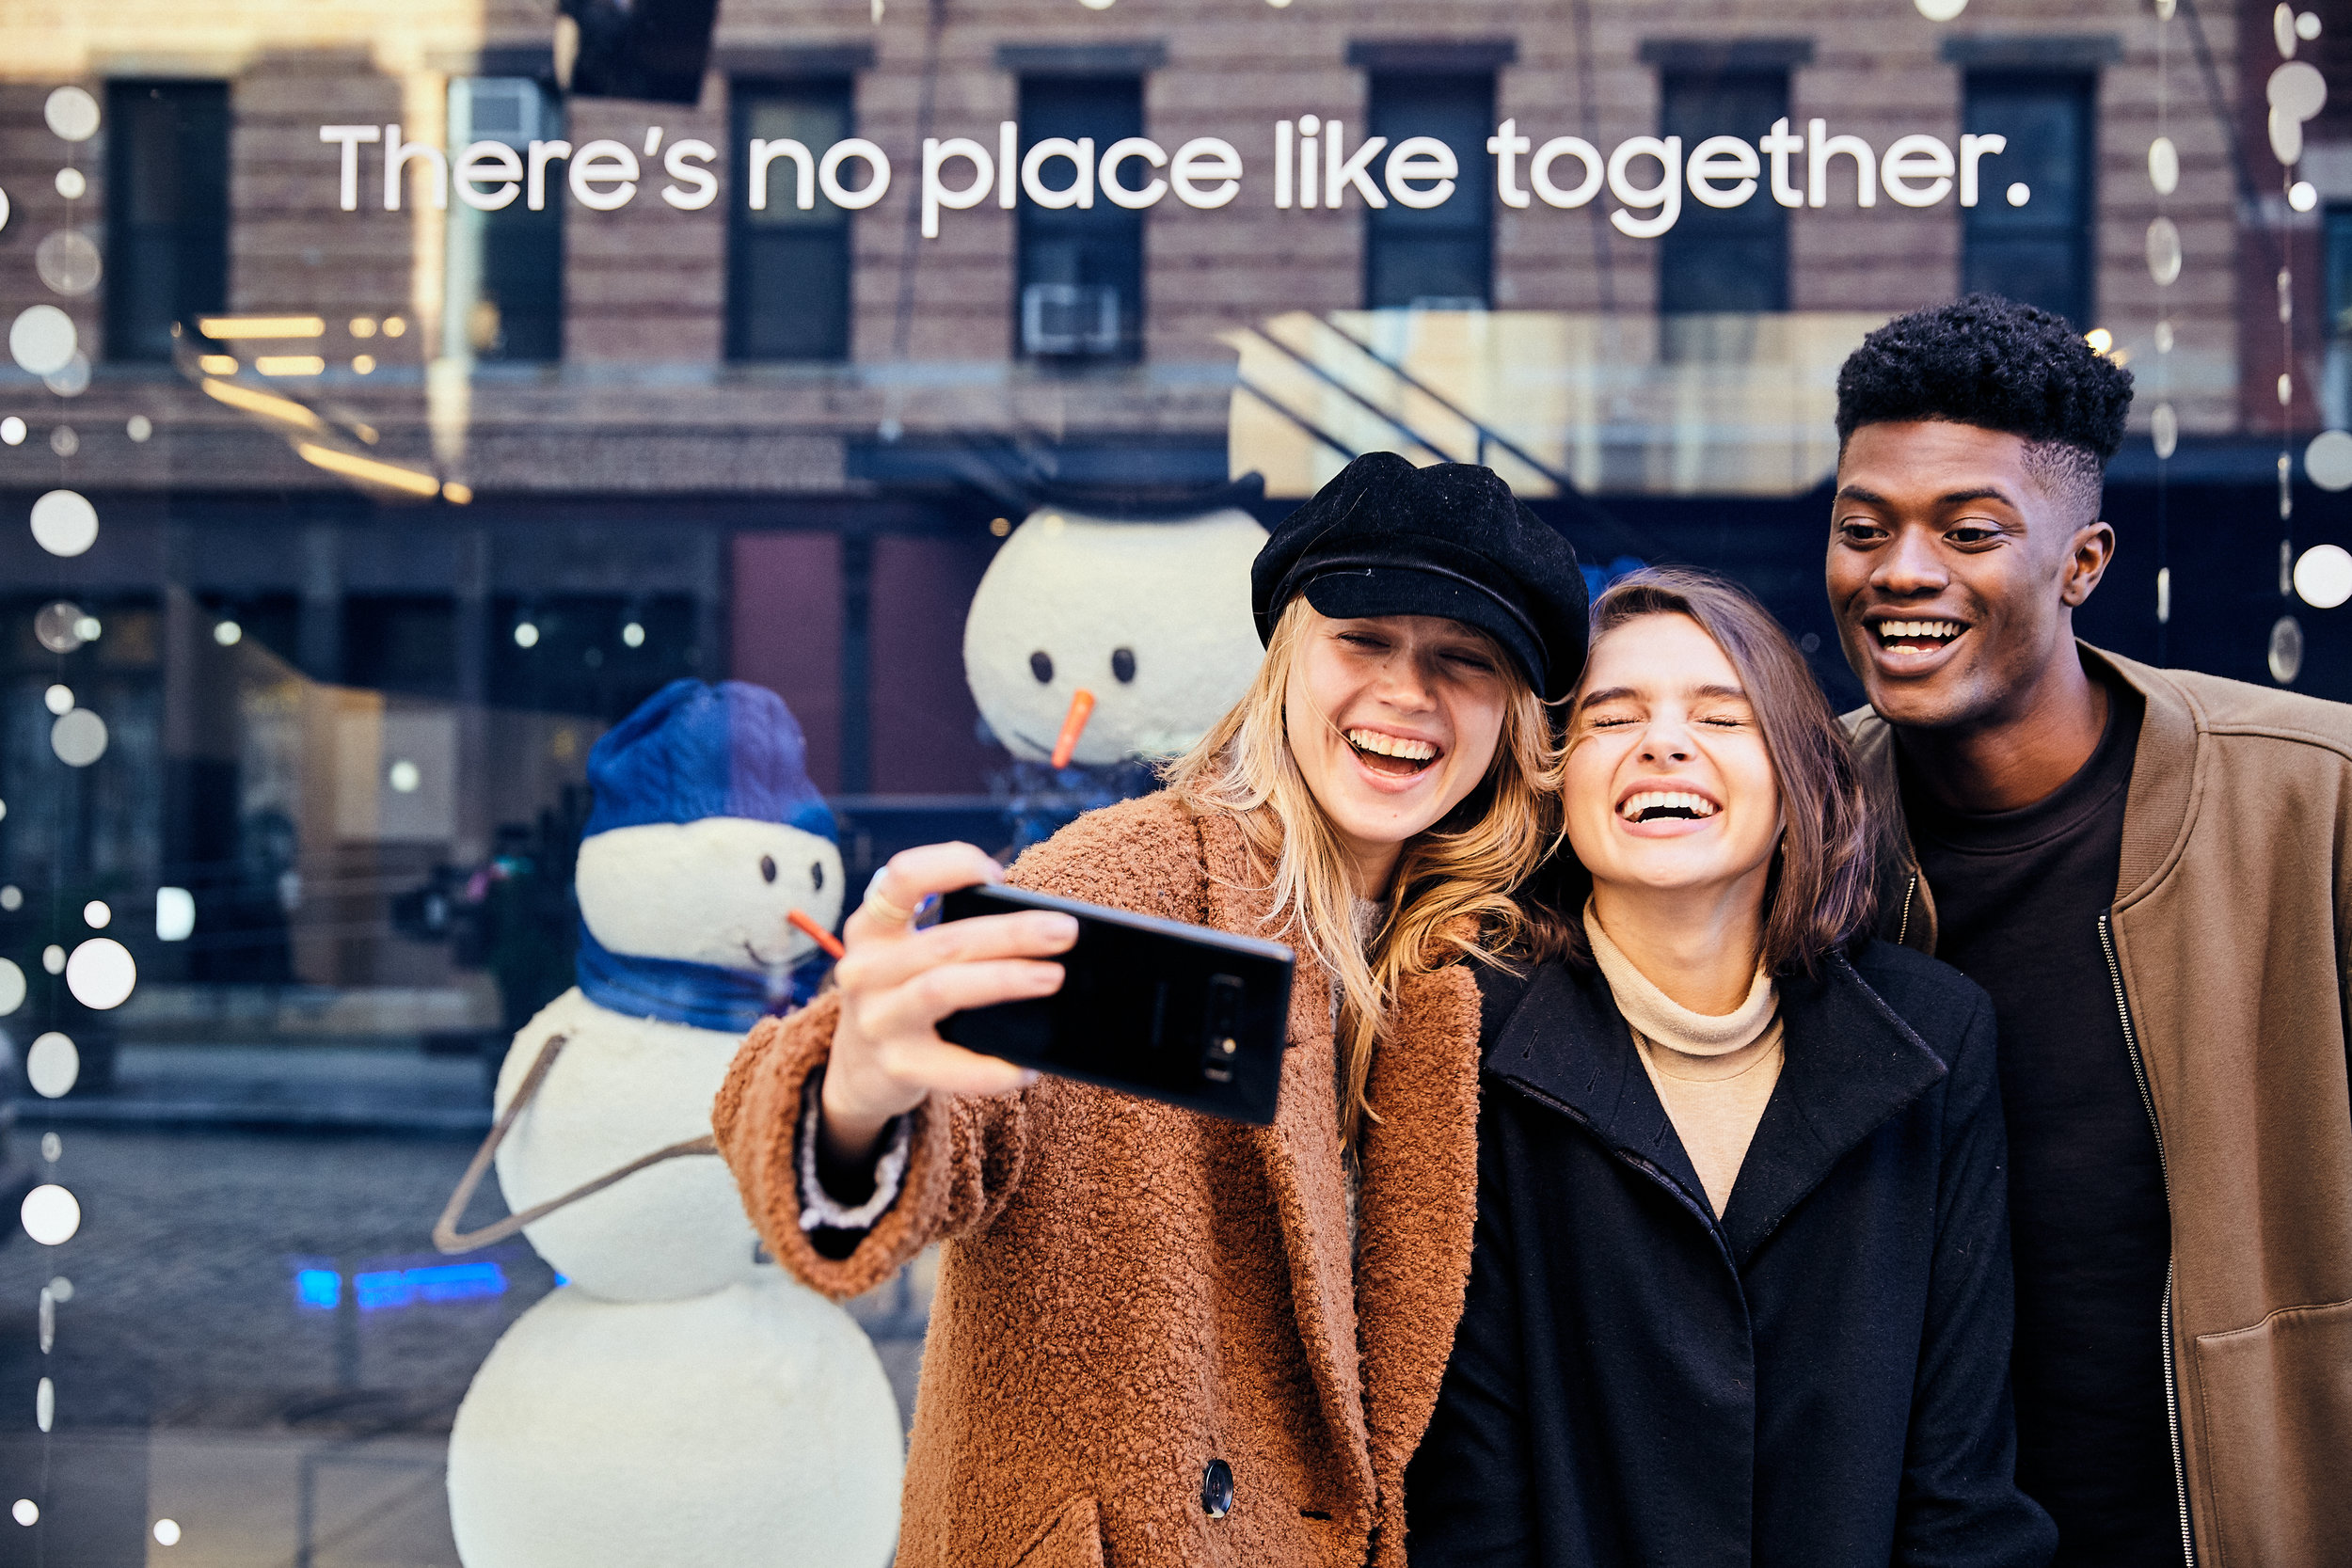 Samsung 837 Holiday Campaign